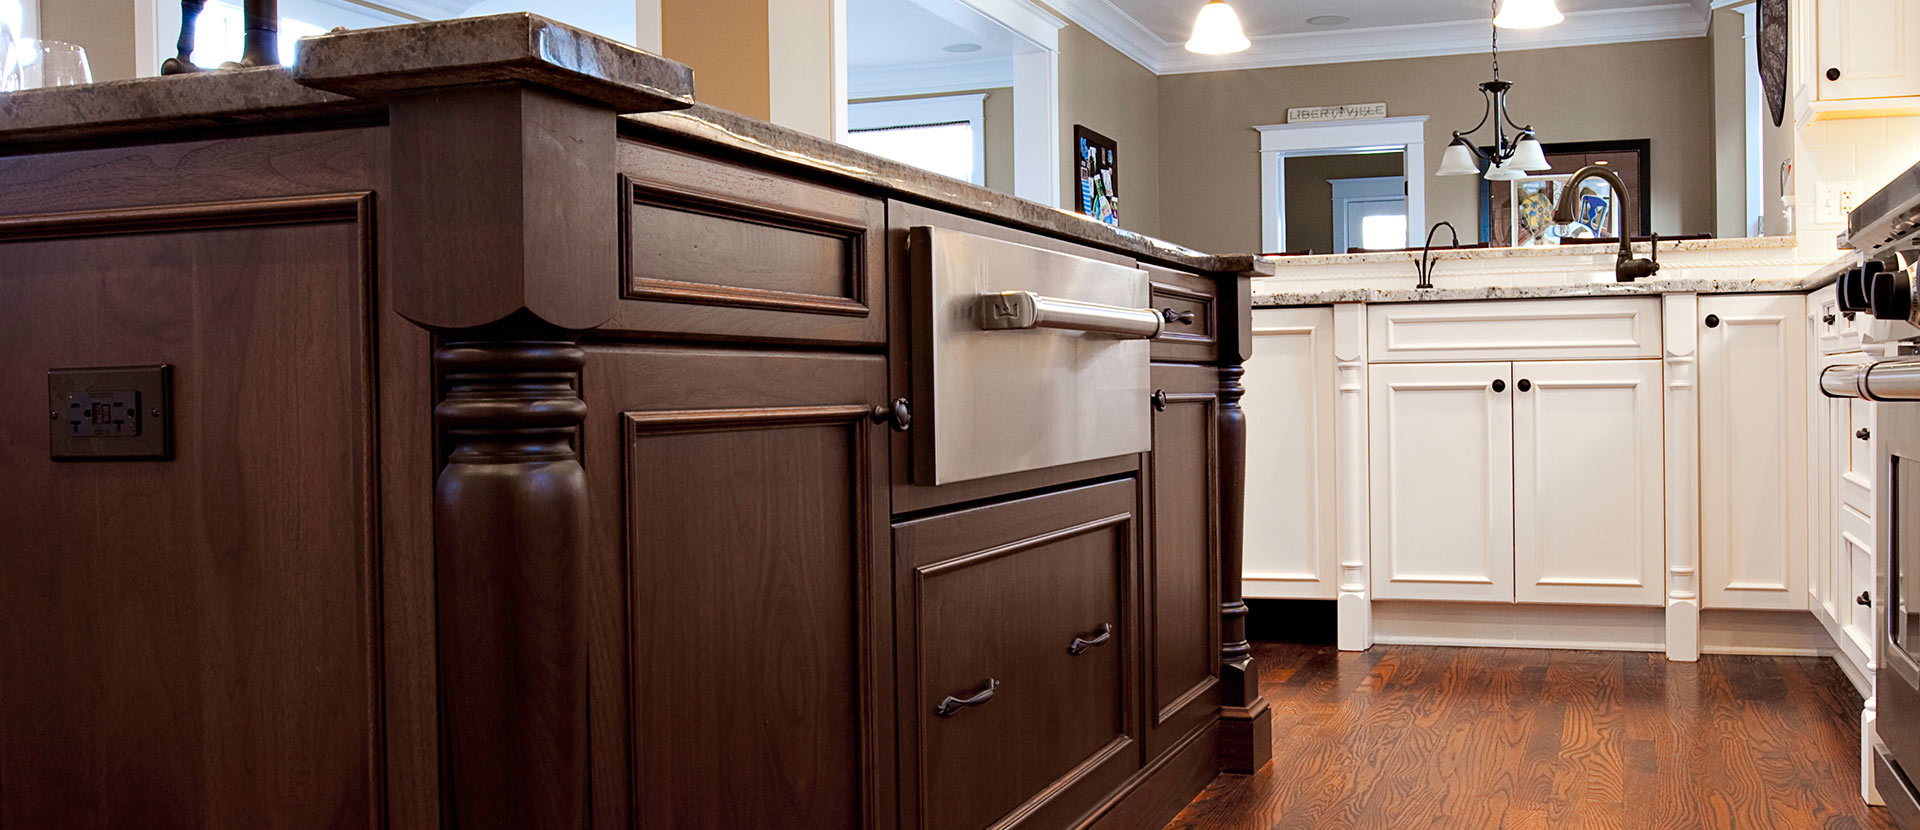 Types of Wood Cabinets for Your Kitchen - Builders Cabinet